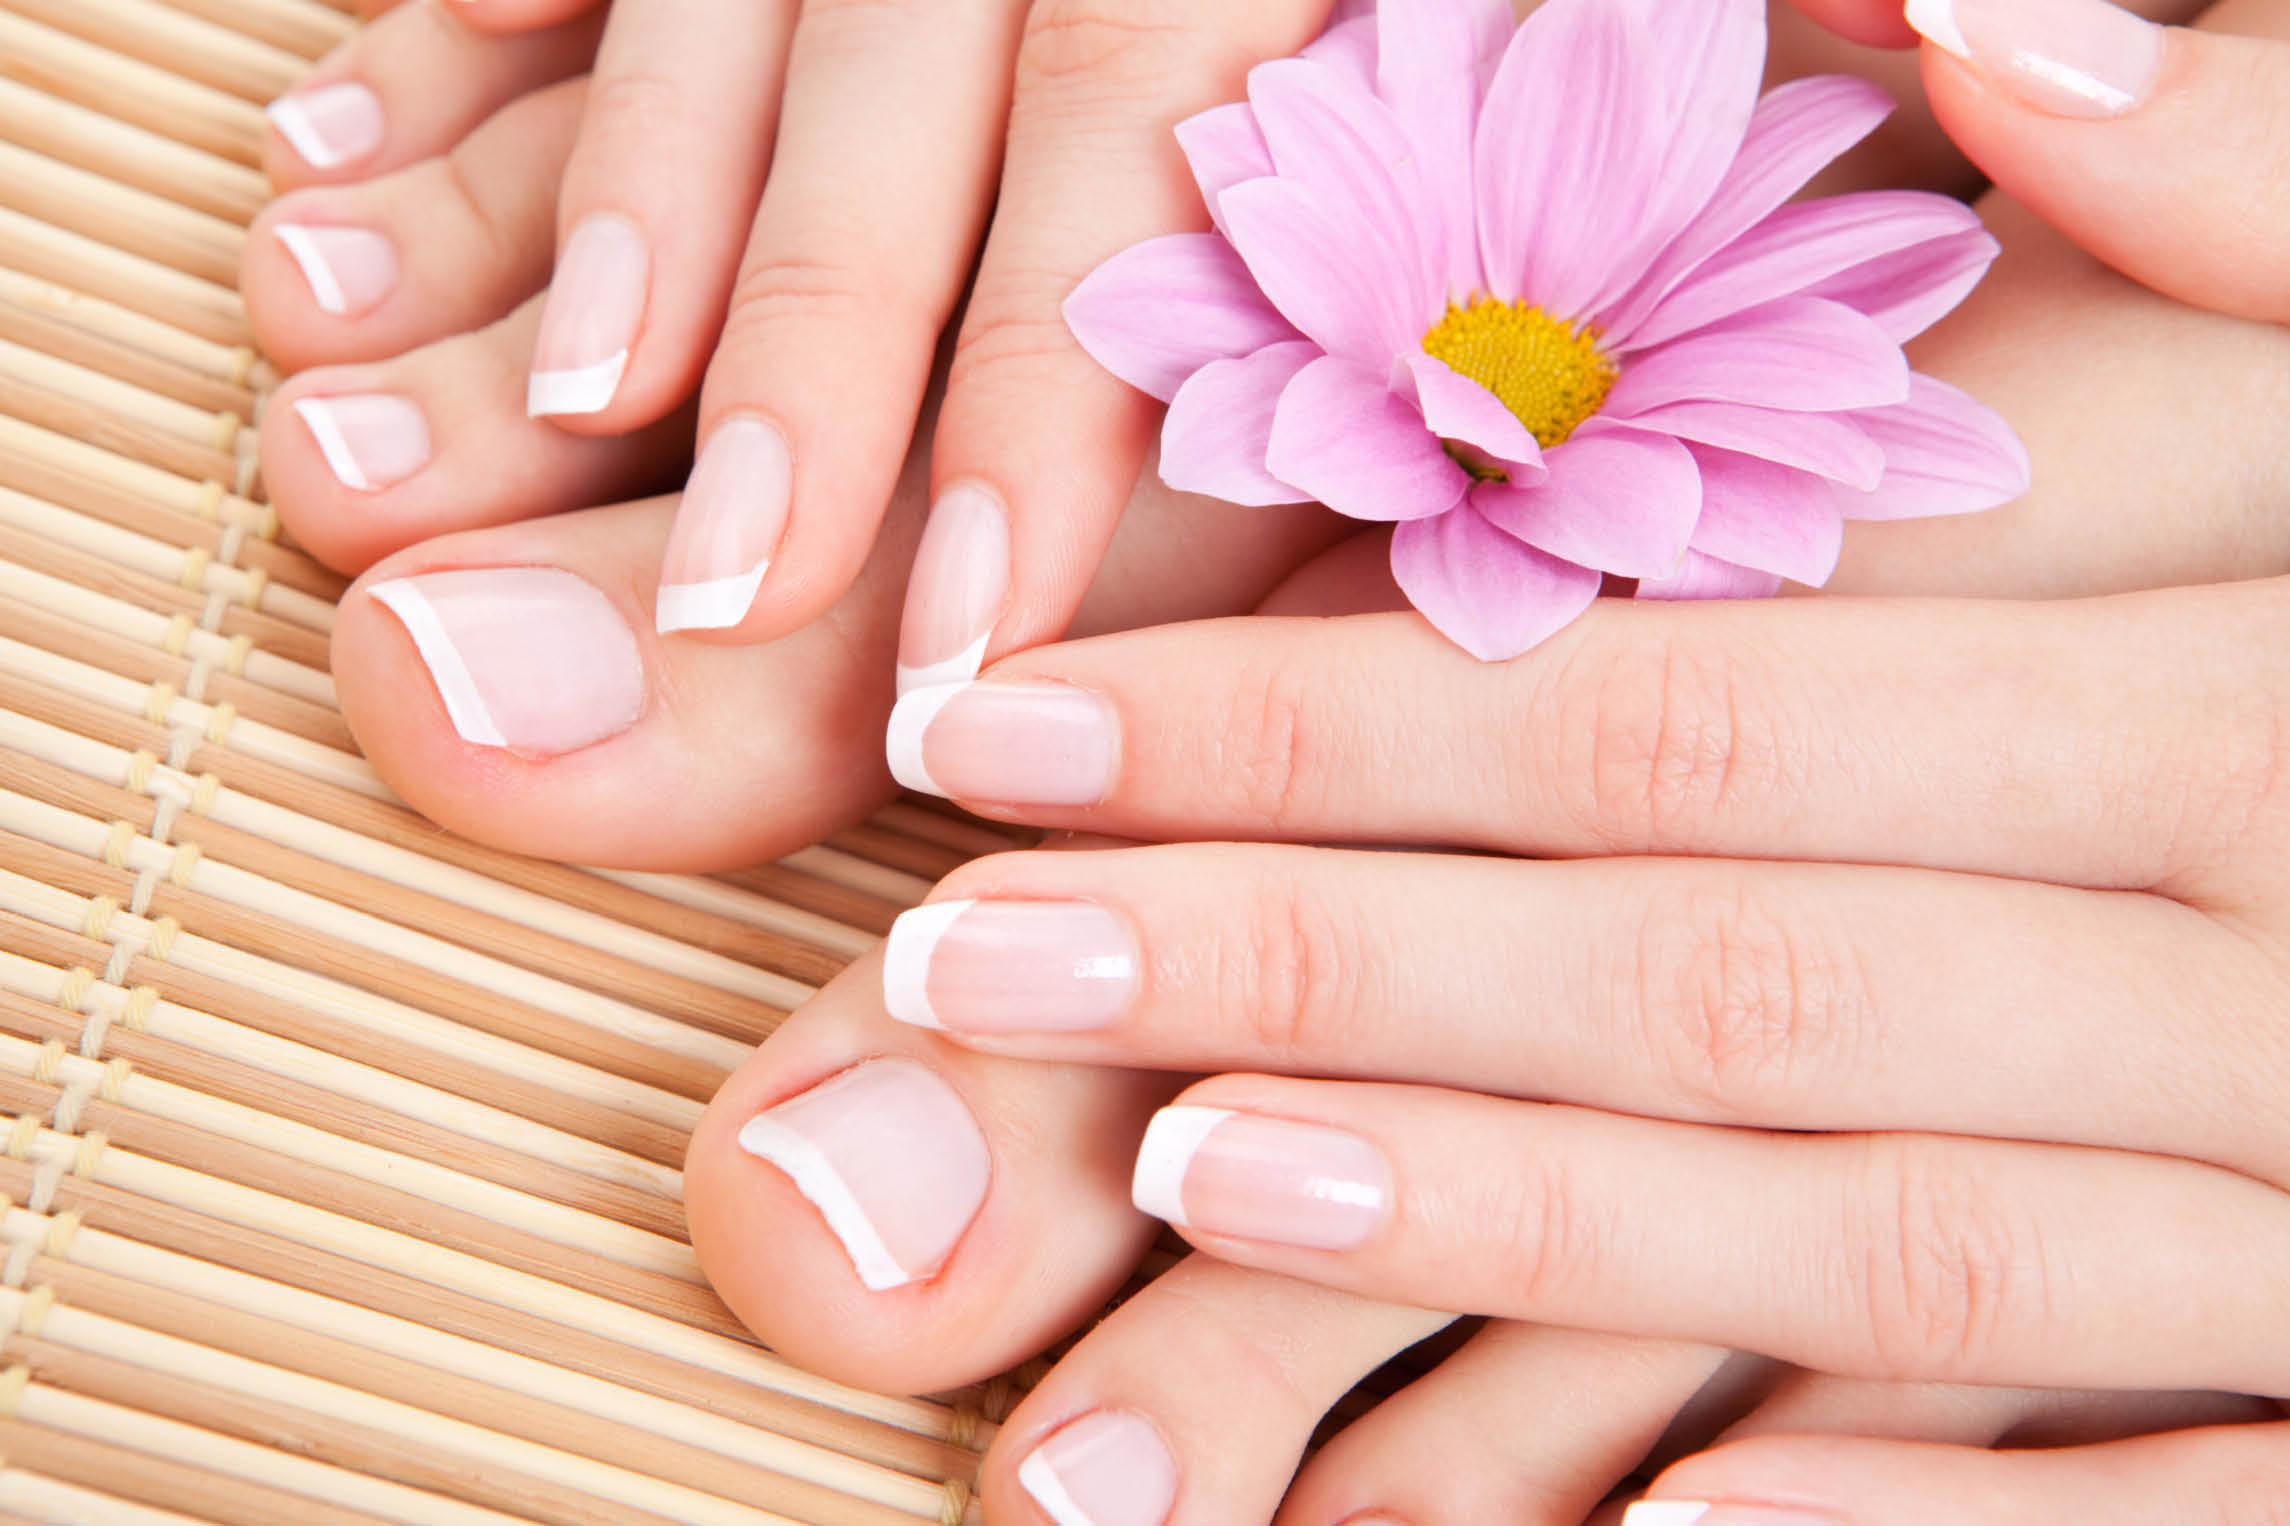 torry's salon and spa, T's nails and spa, spa pedicures independence, nail salon independence, mani pedi independence, gel nails independence, waxing independence, 3d nail design independence, nail salons kansas city, spa pedicures kansas city